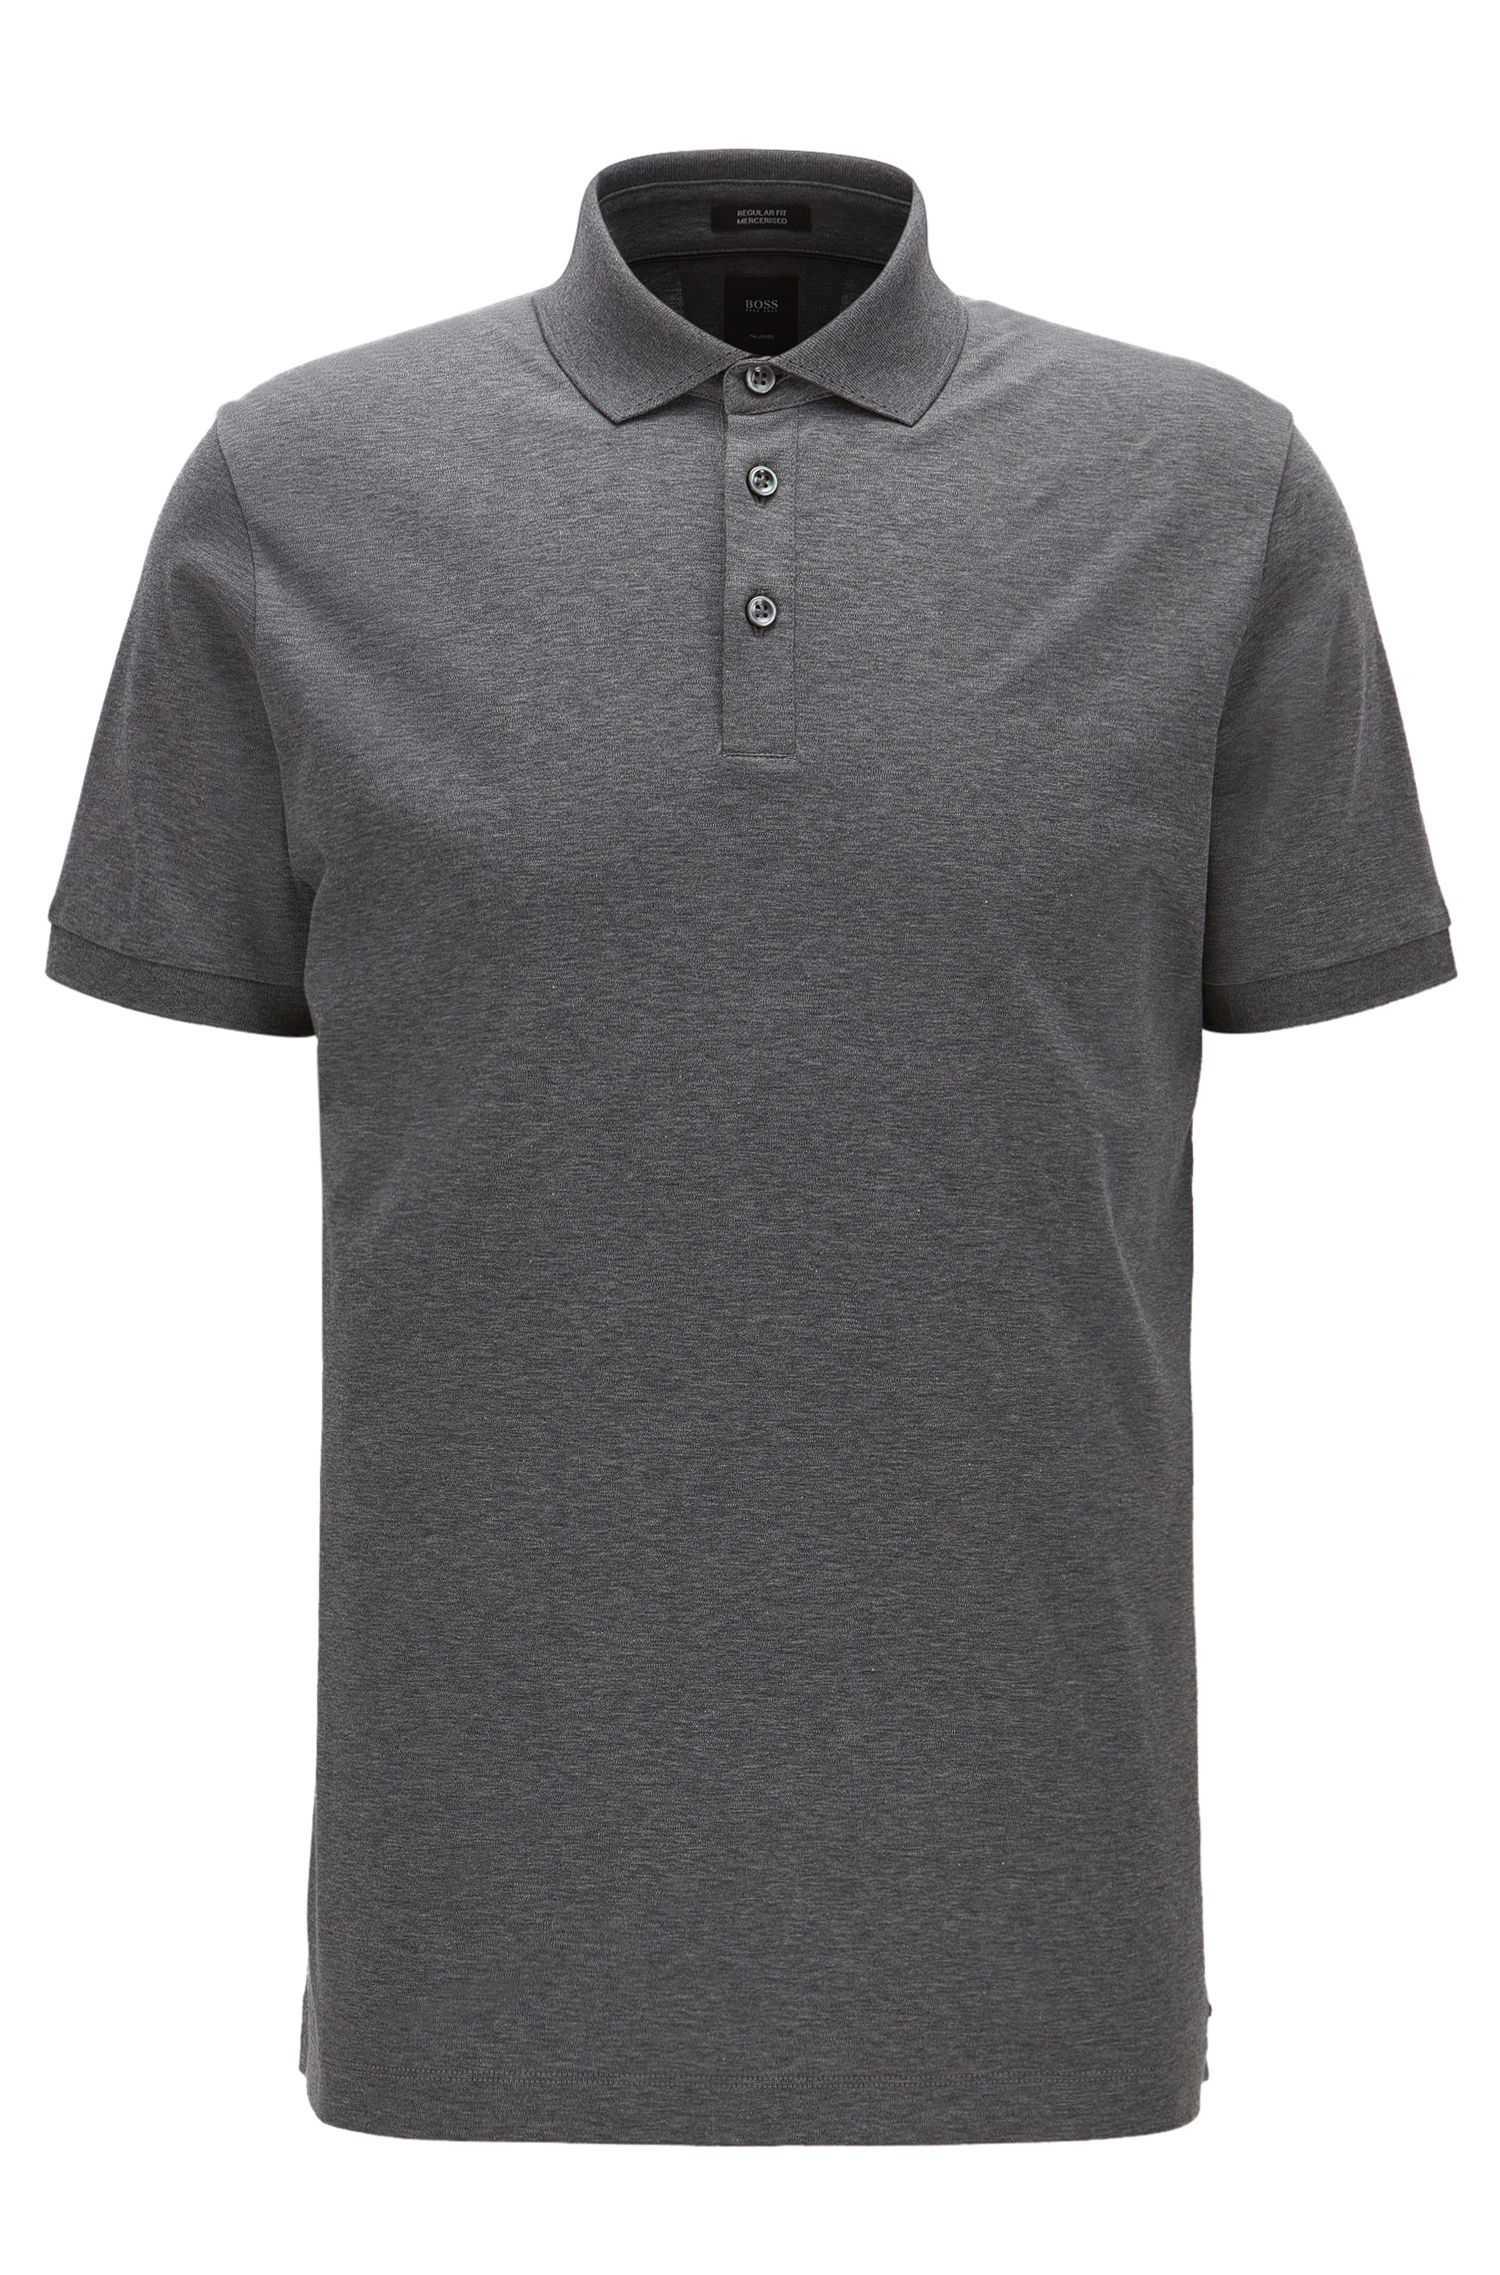 'T-Perry' | Regular Fit, Mercerized Cotton Polo Shirt